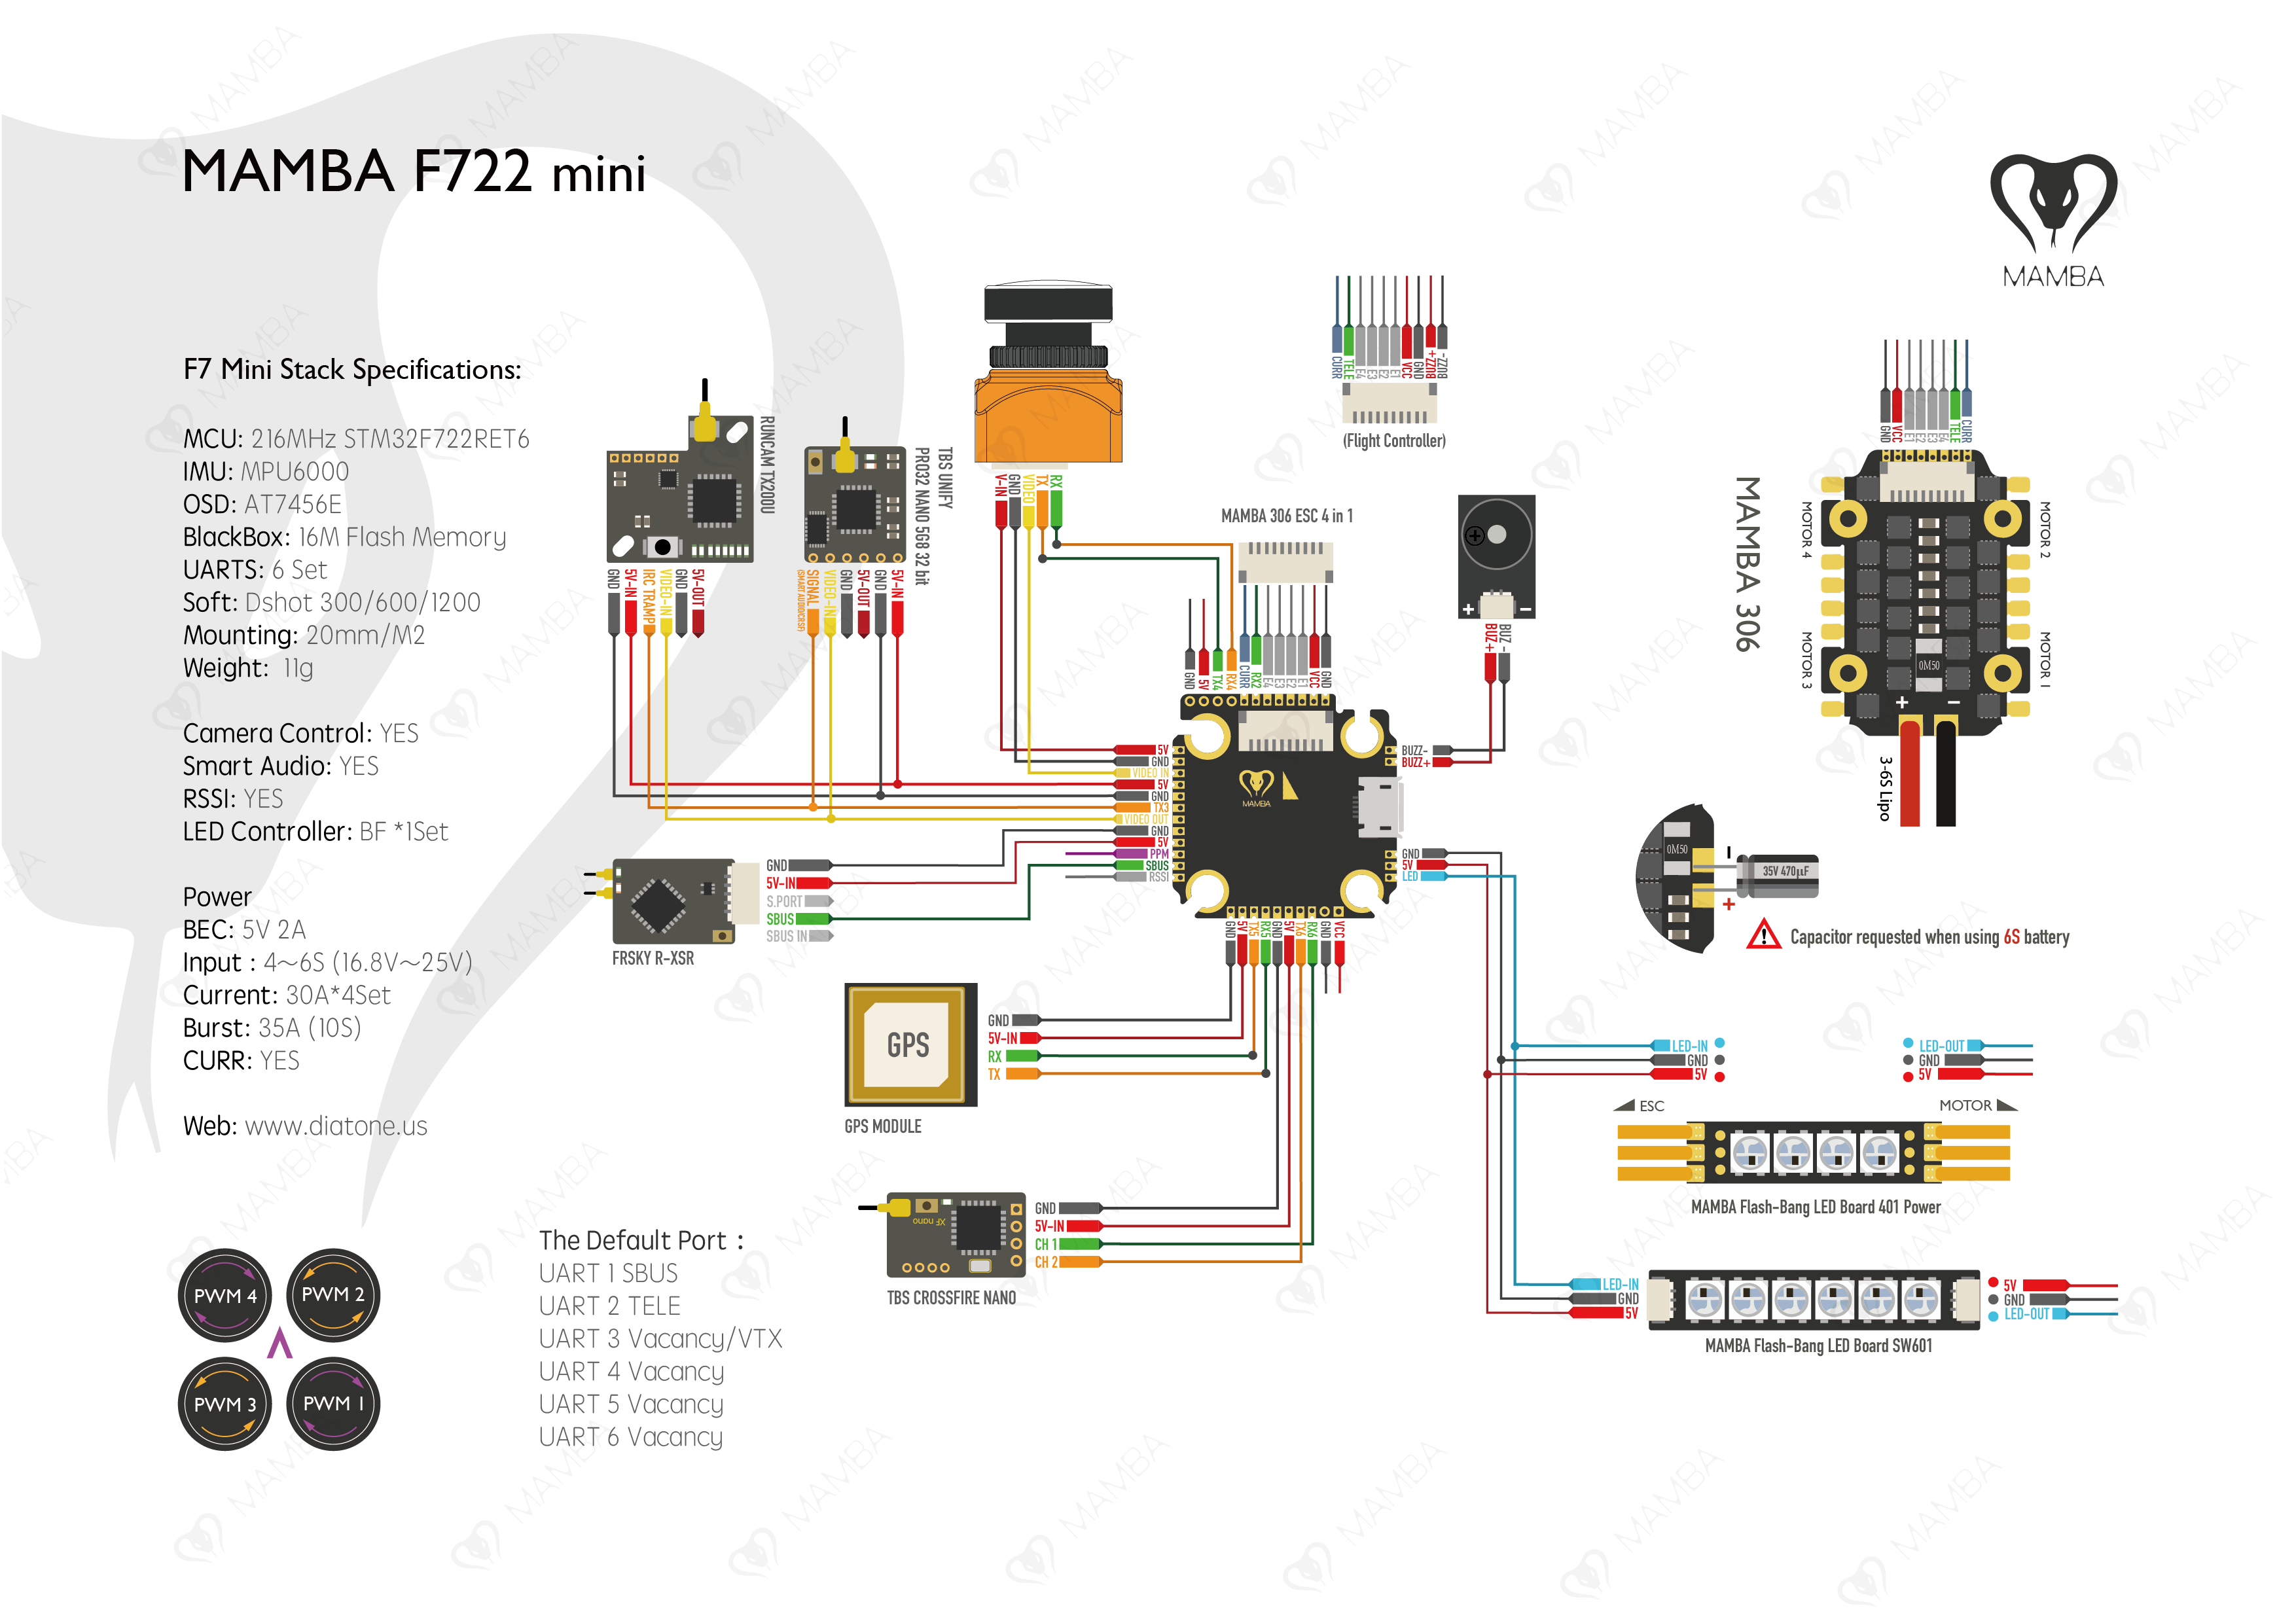 need help with my first build, connecting the dji air unit naza lite wiring diagram vimvip 3pin 10cm 22awg 60 cores wire